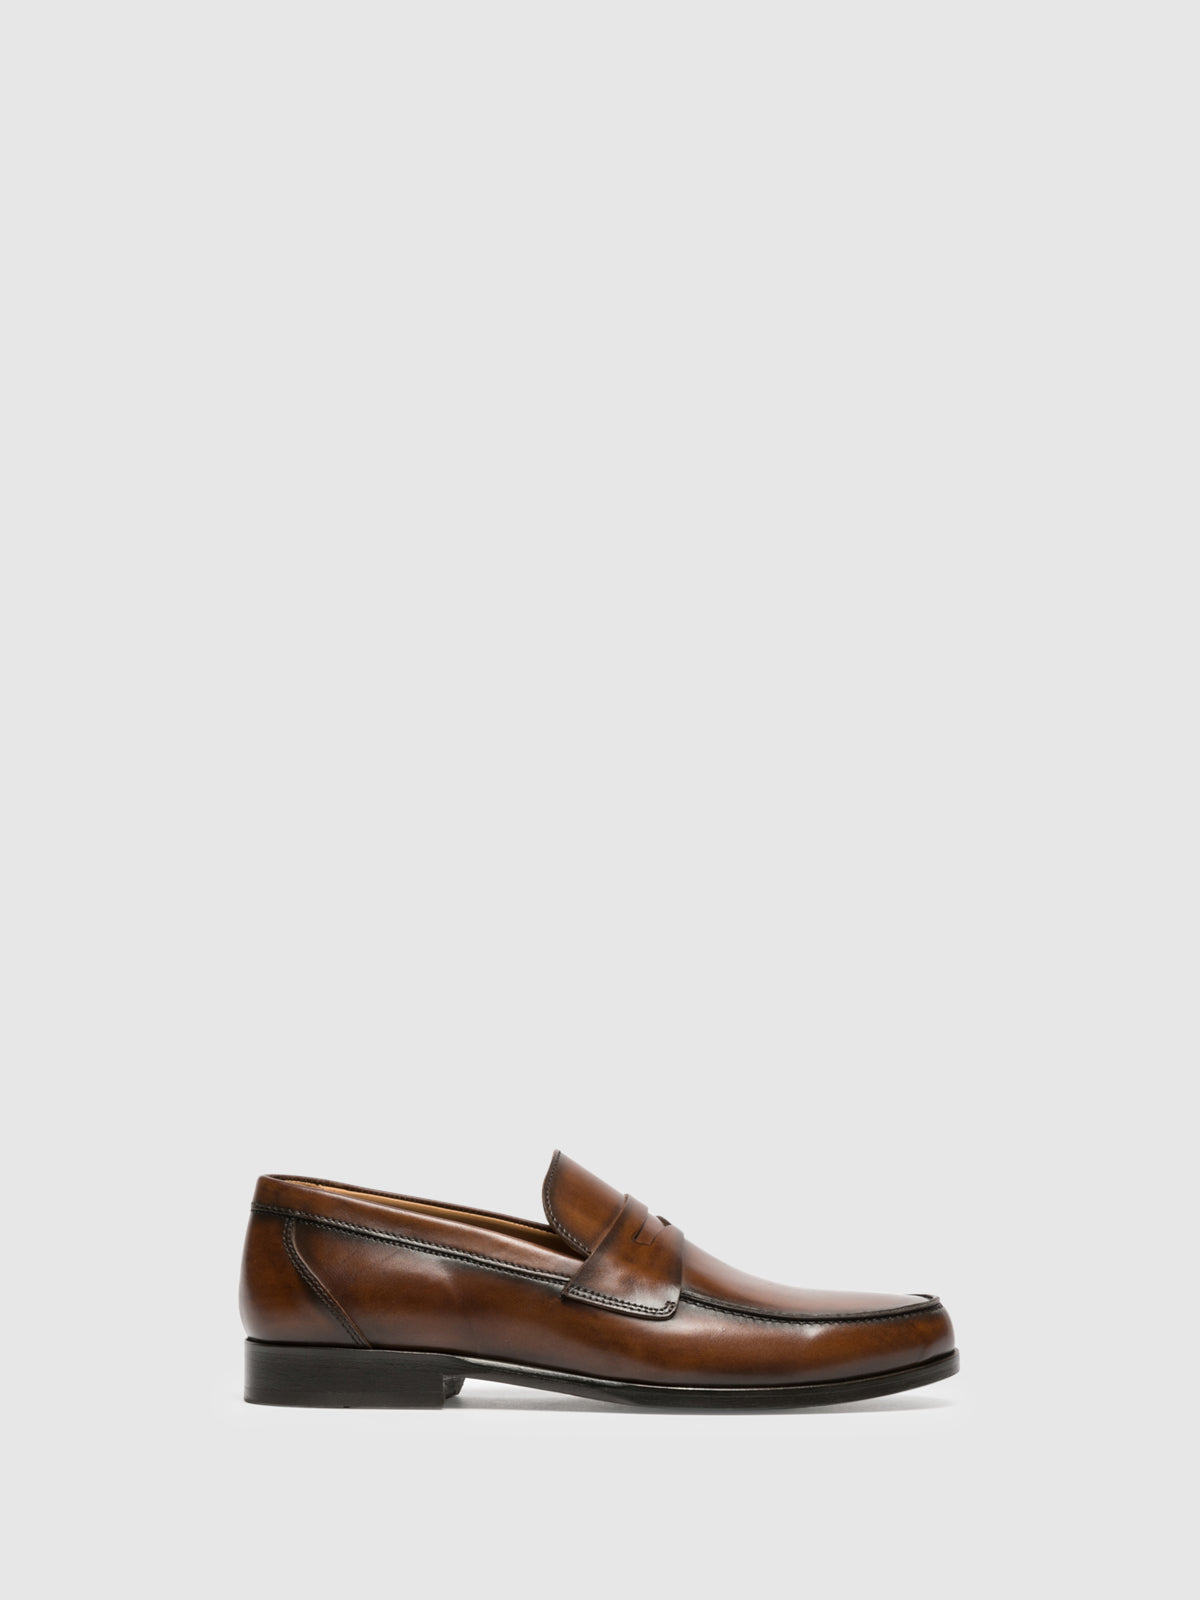 Yucca Peru Loafers Shoes